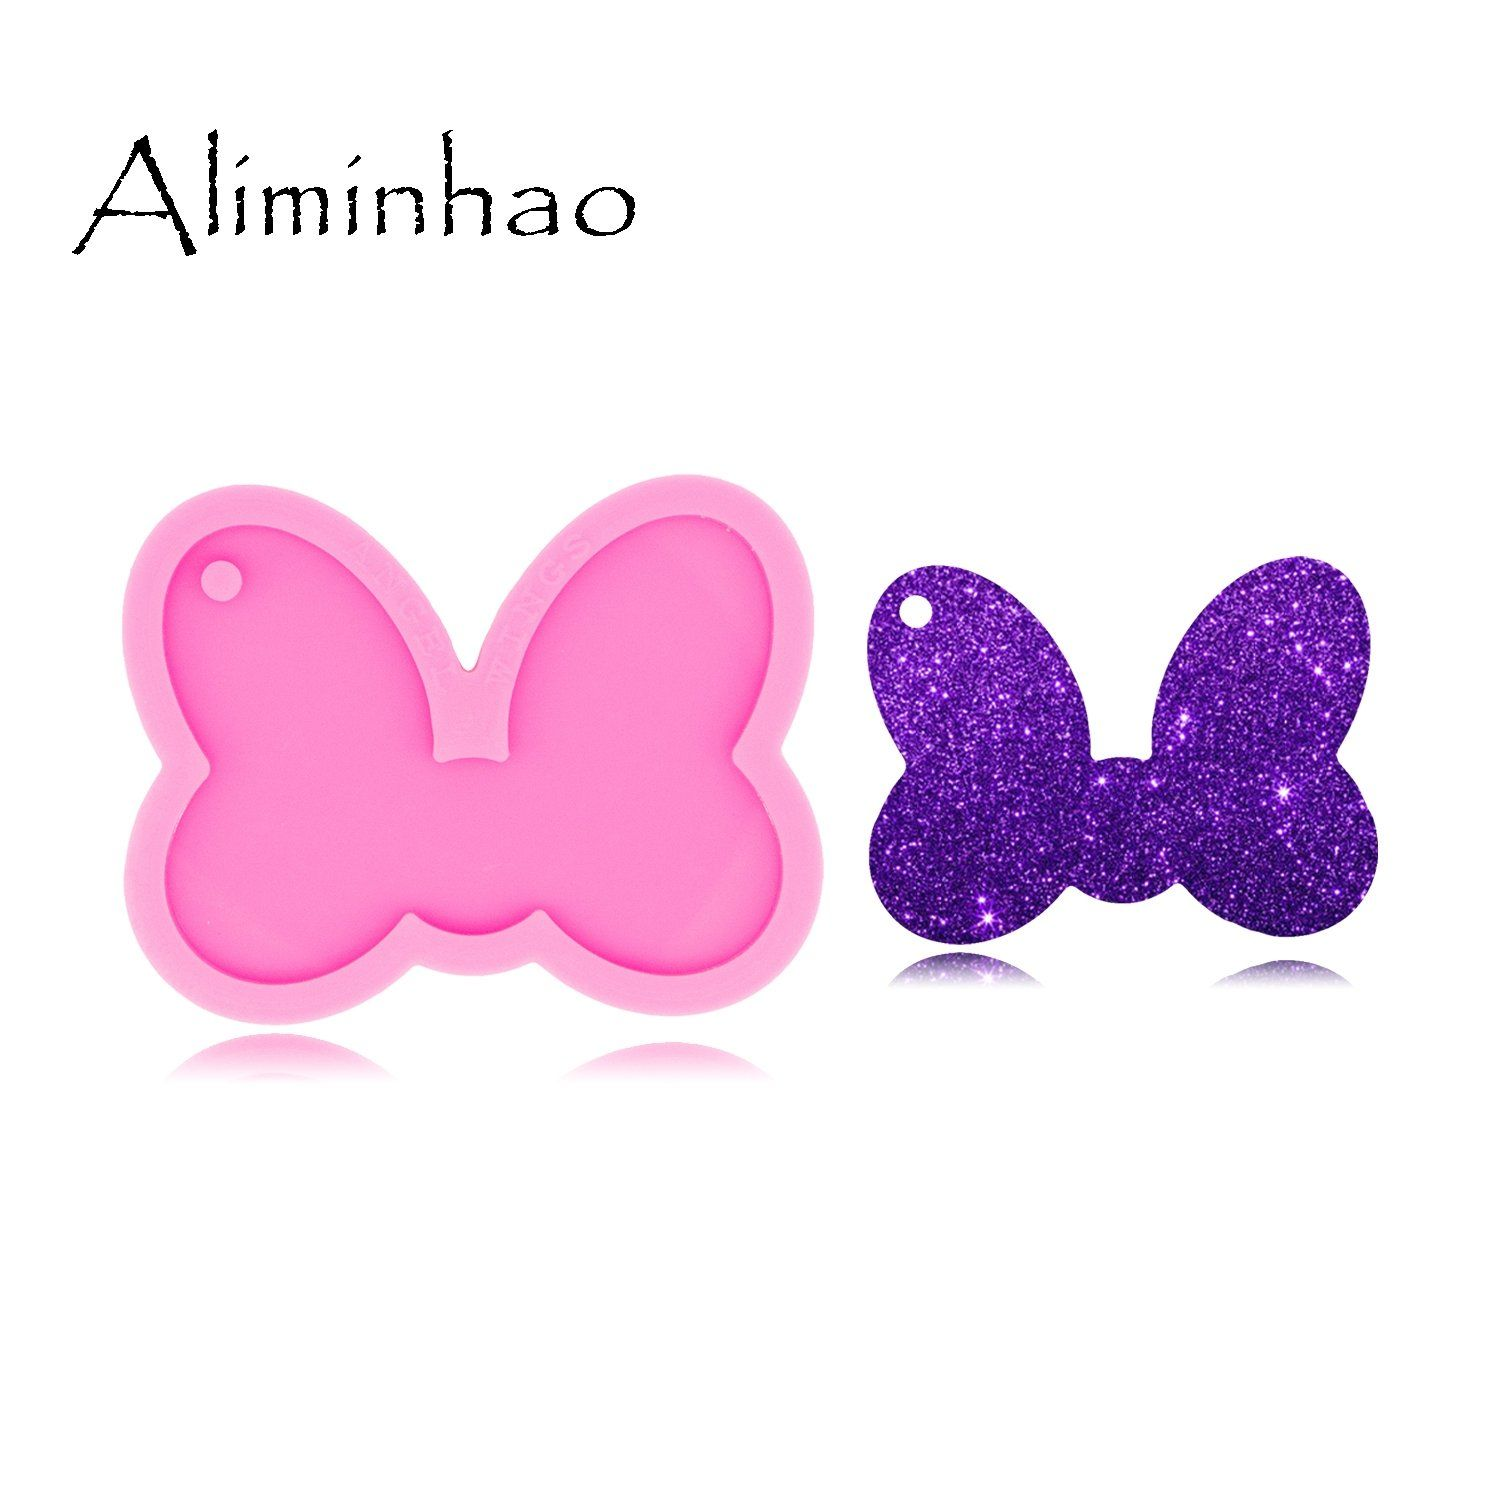 Bow Mouse Animated Shape Keychain Silicone Mold In 2020 Silicone Molds Molding Clay Resin Molds